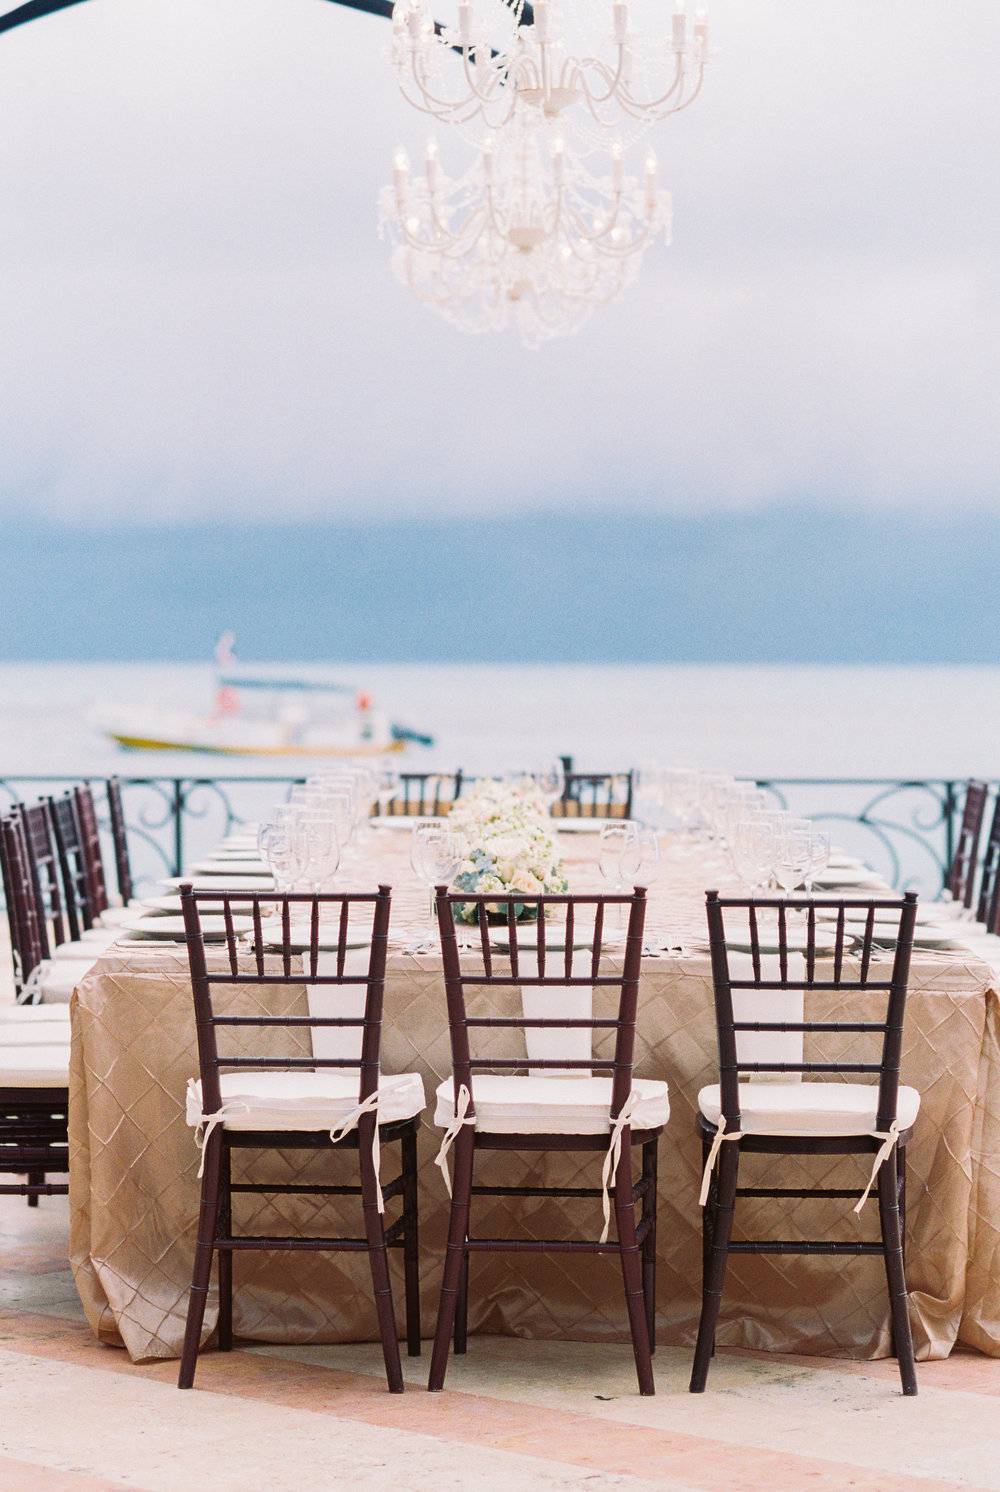 mexico_destination_wedding_villa_la_joya_cancun_52.jpg